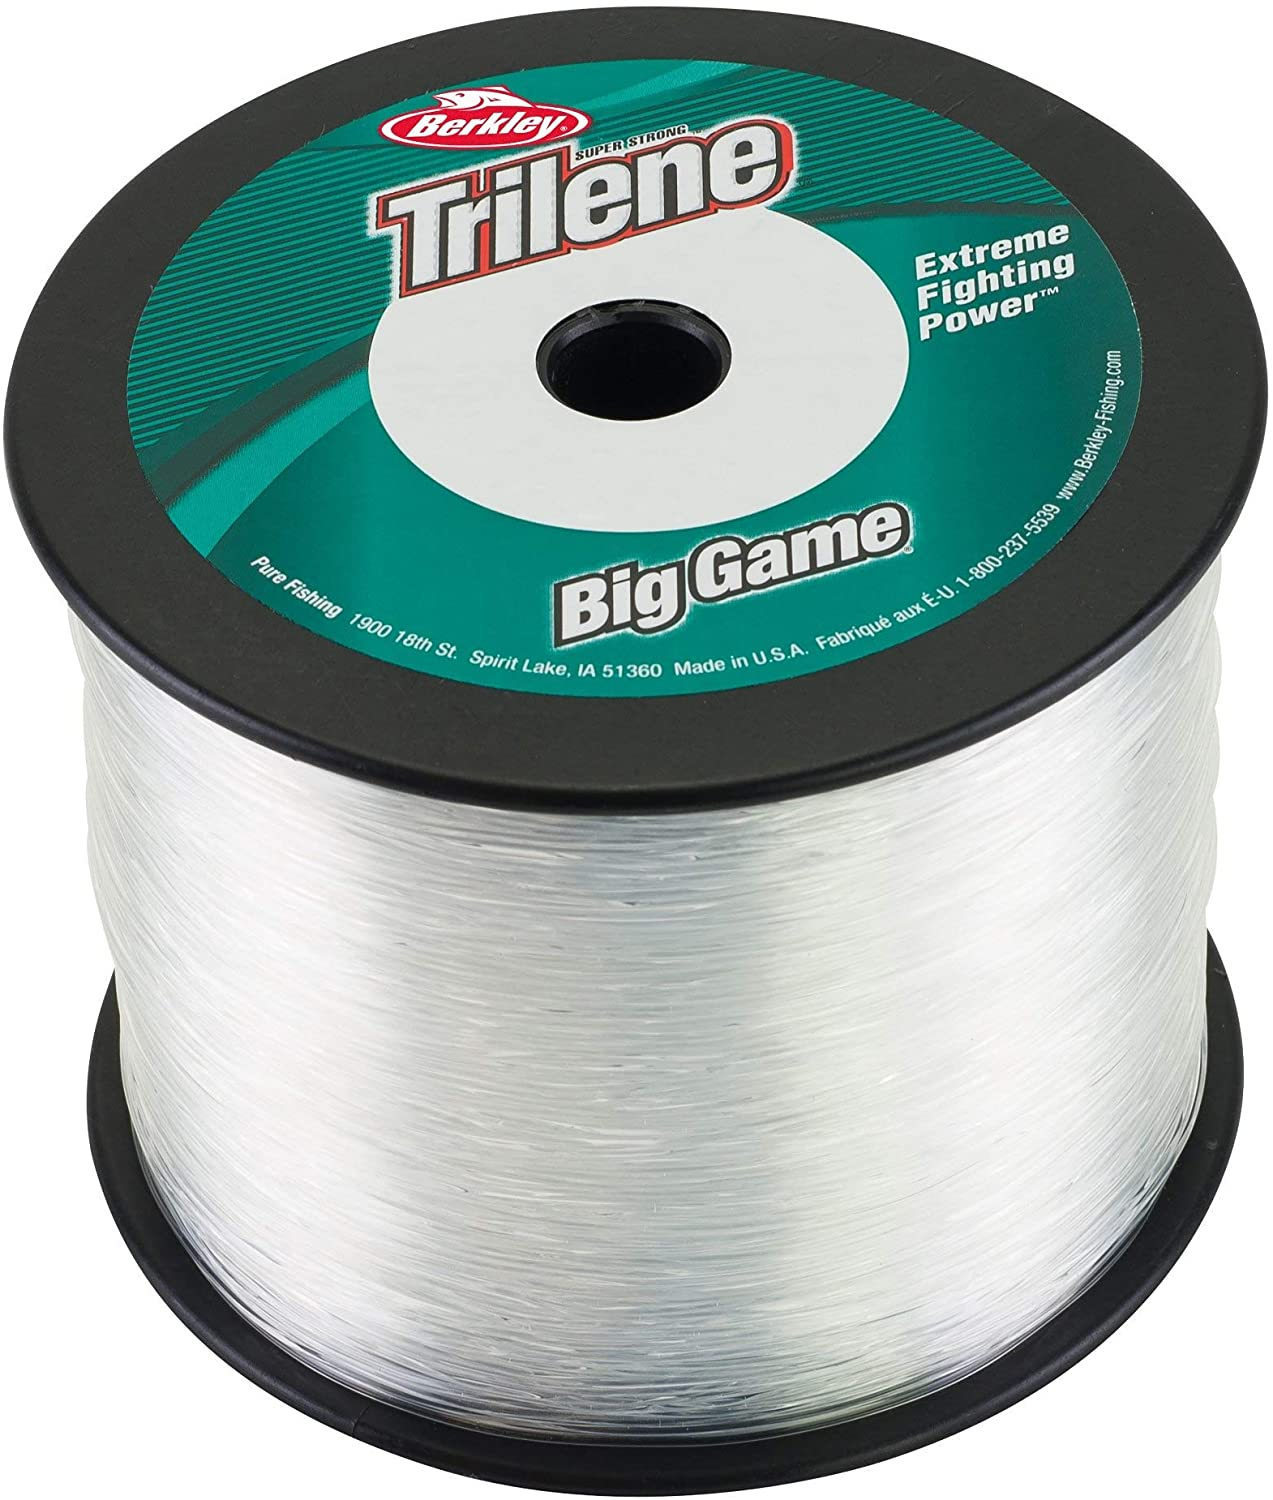 Berkeley Trilene Big Game Line